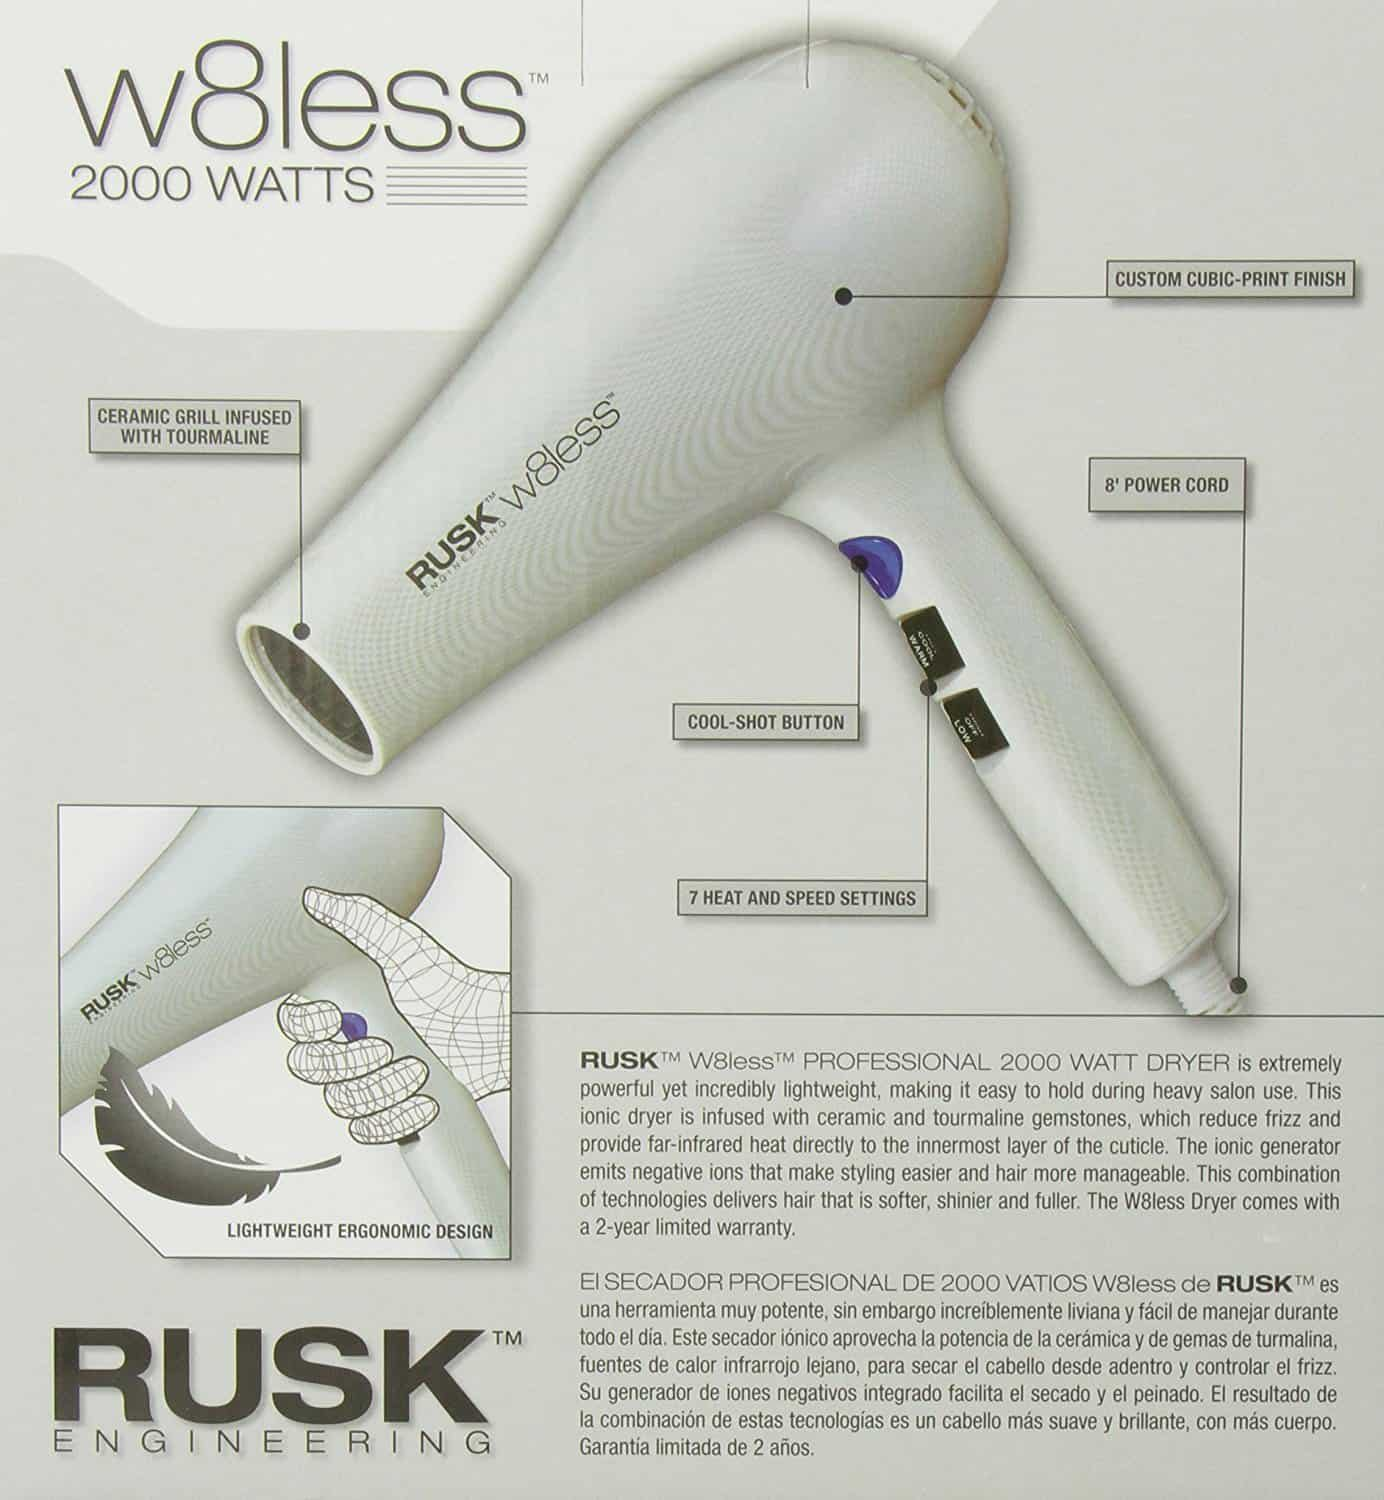 Information on the RUSK w8less blow dryer